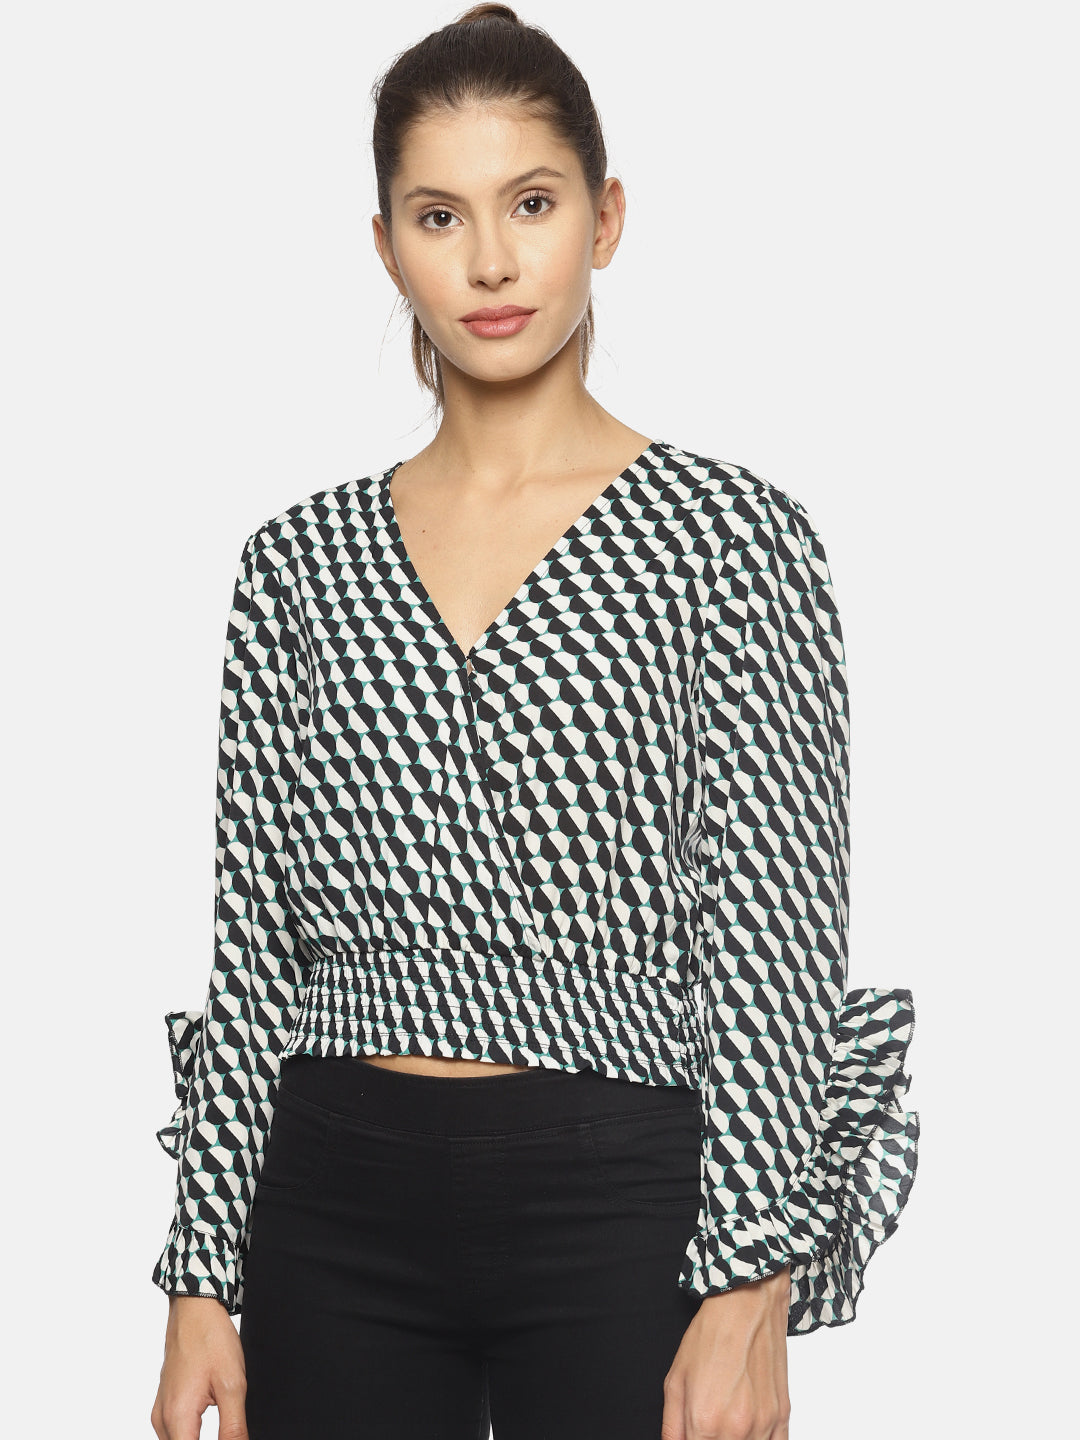 SAHORA Women printed crop Top